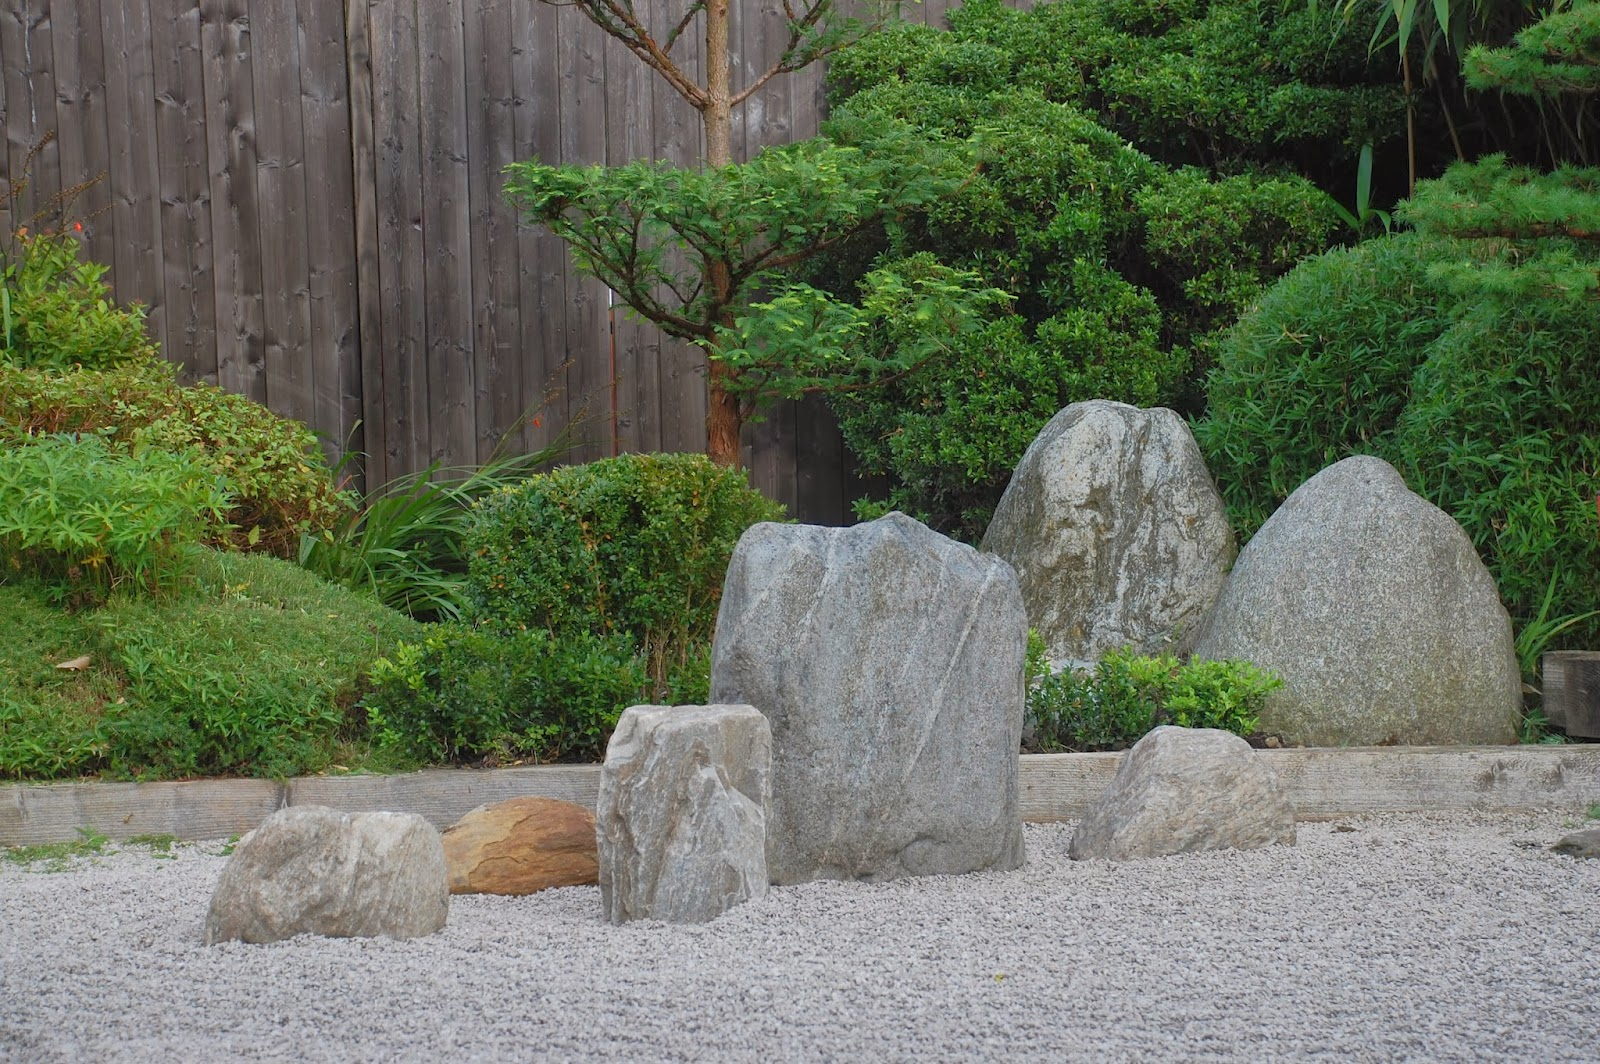 robert ketchell 39 s blog arranging stones in a japanese